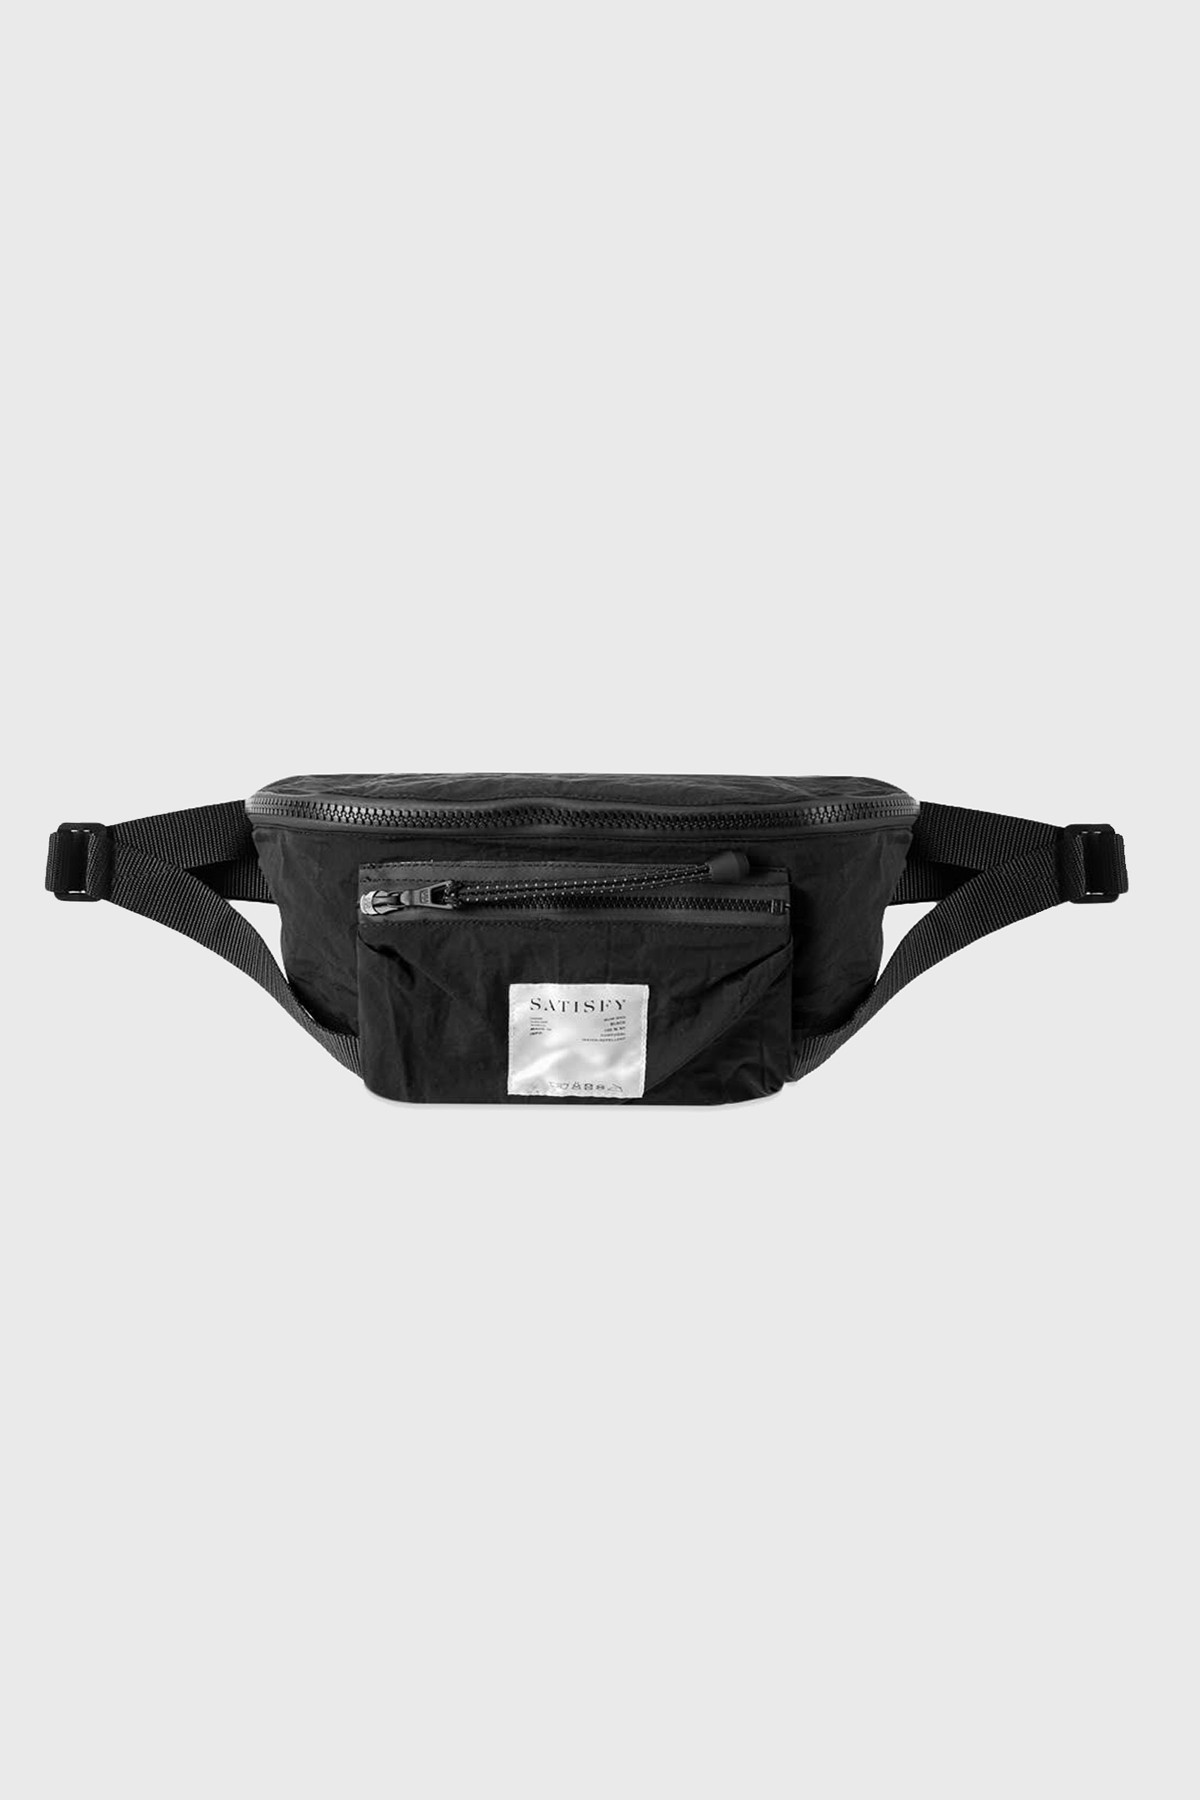 Satisfy - Belt Bag - Black